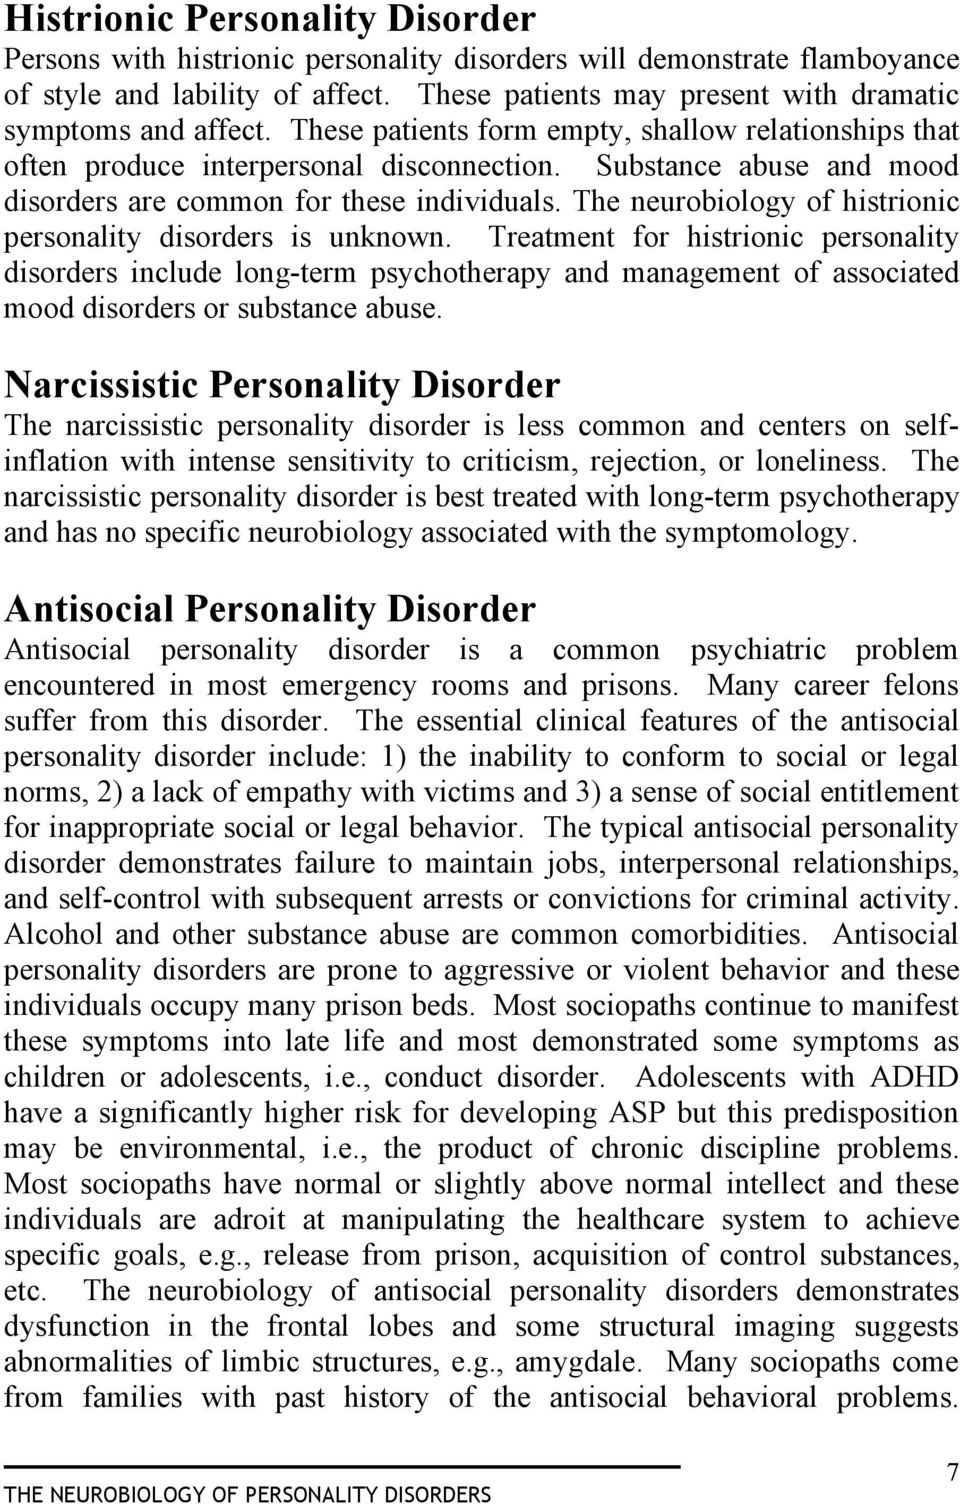 Substance abuse and mood disorders are common for these individuals. The neurobiology of histrionic personality disorders is unknown.